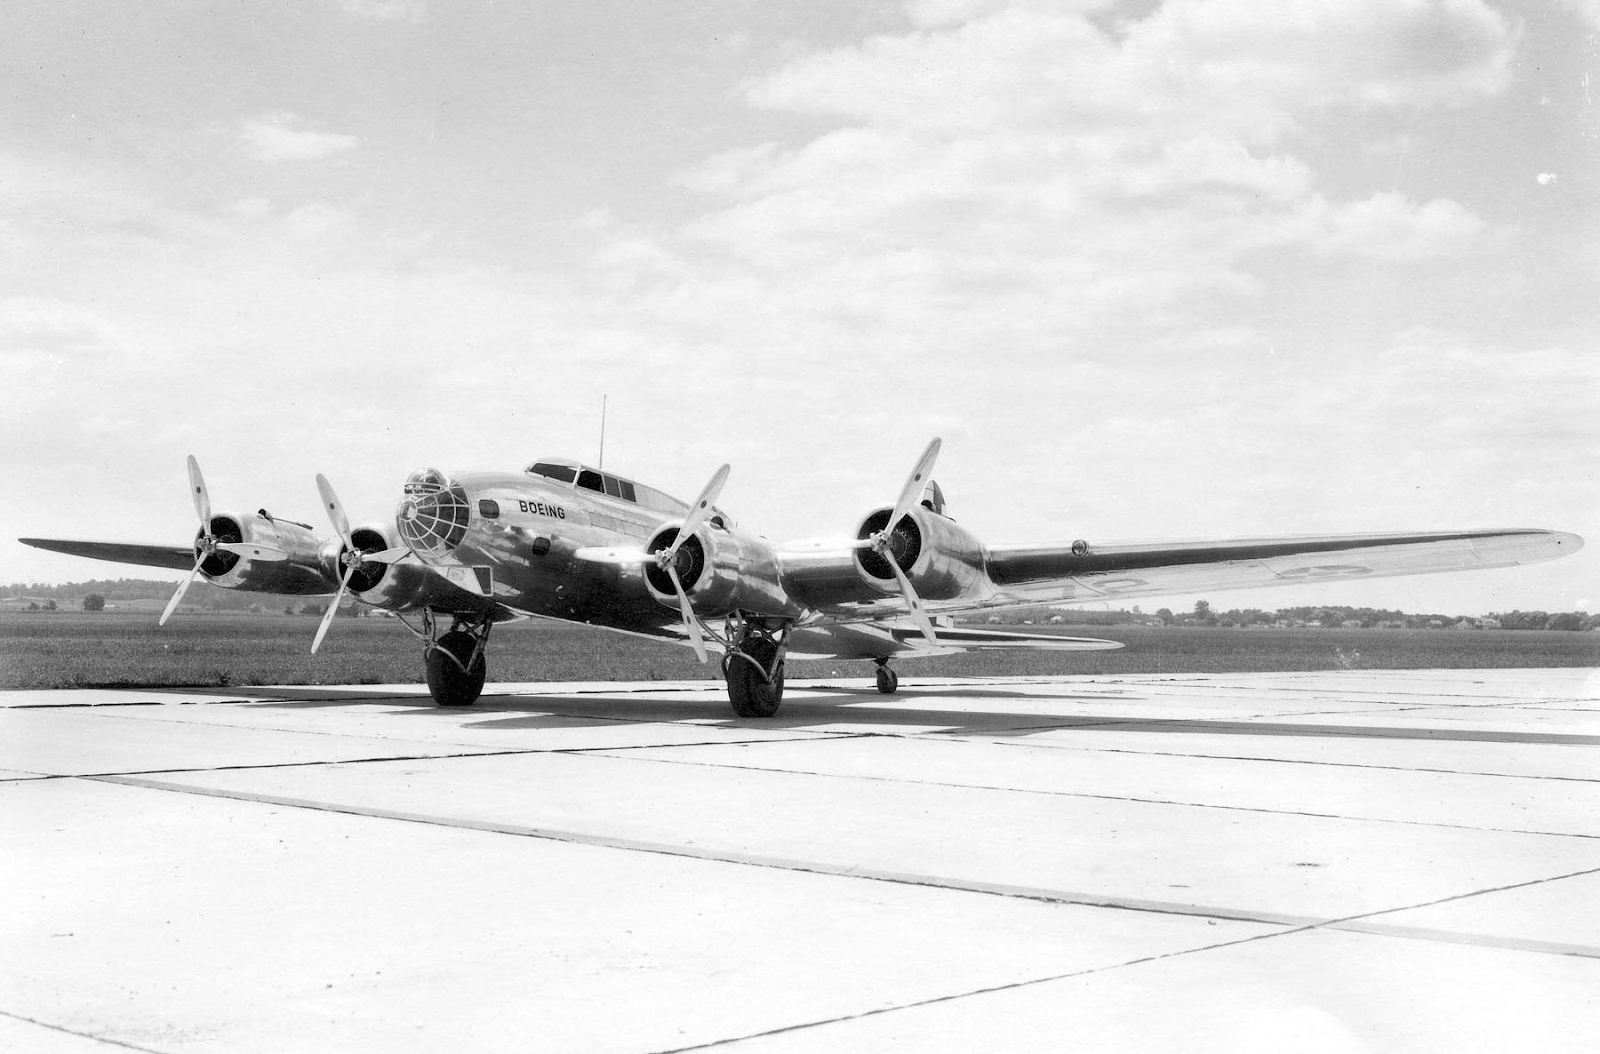 (https://airman.dodlive.mil/2019/03/25/b-17-flying-fortress/)